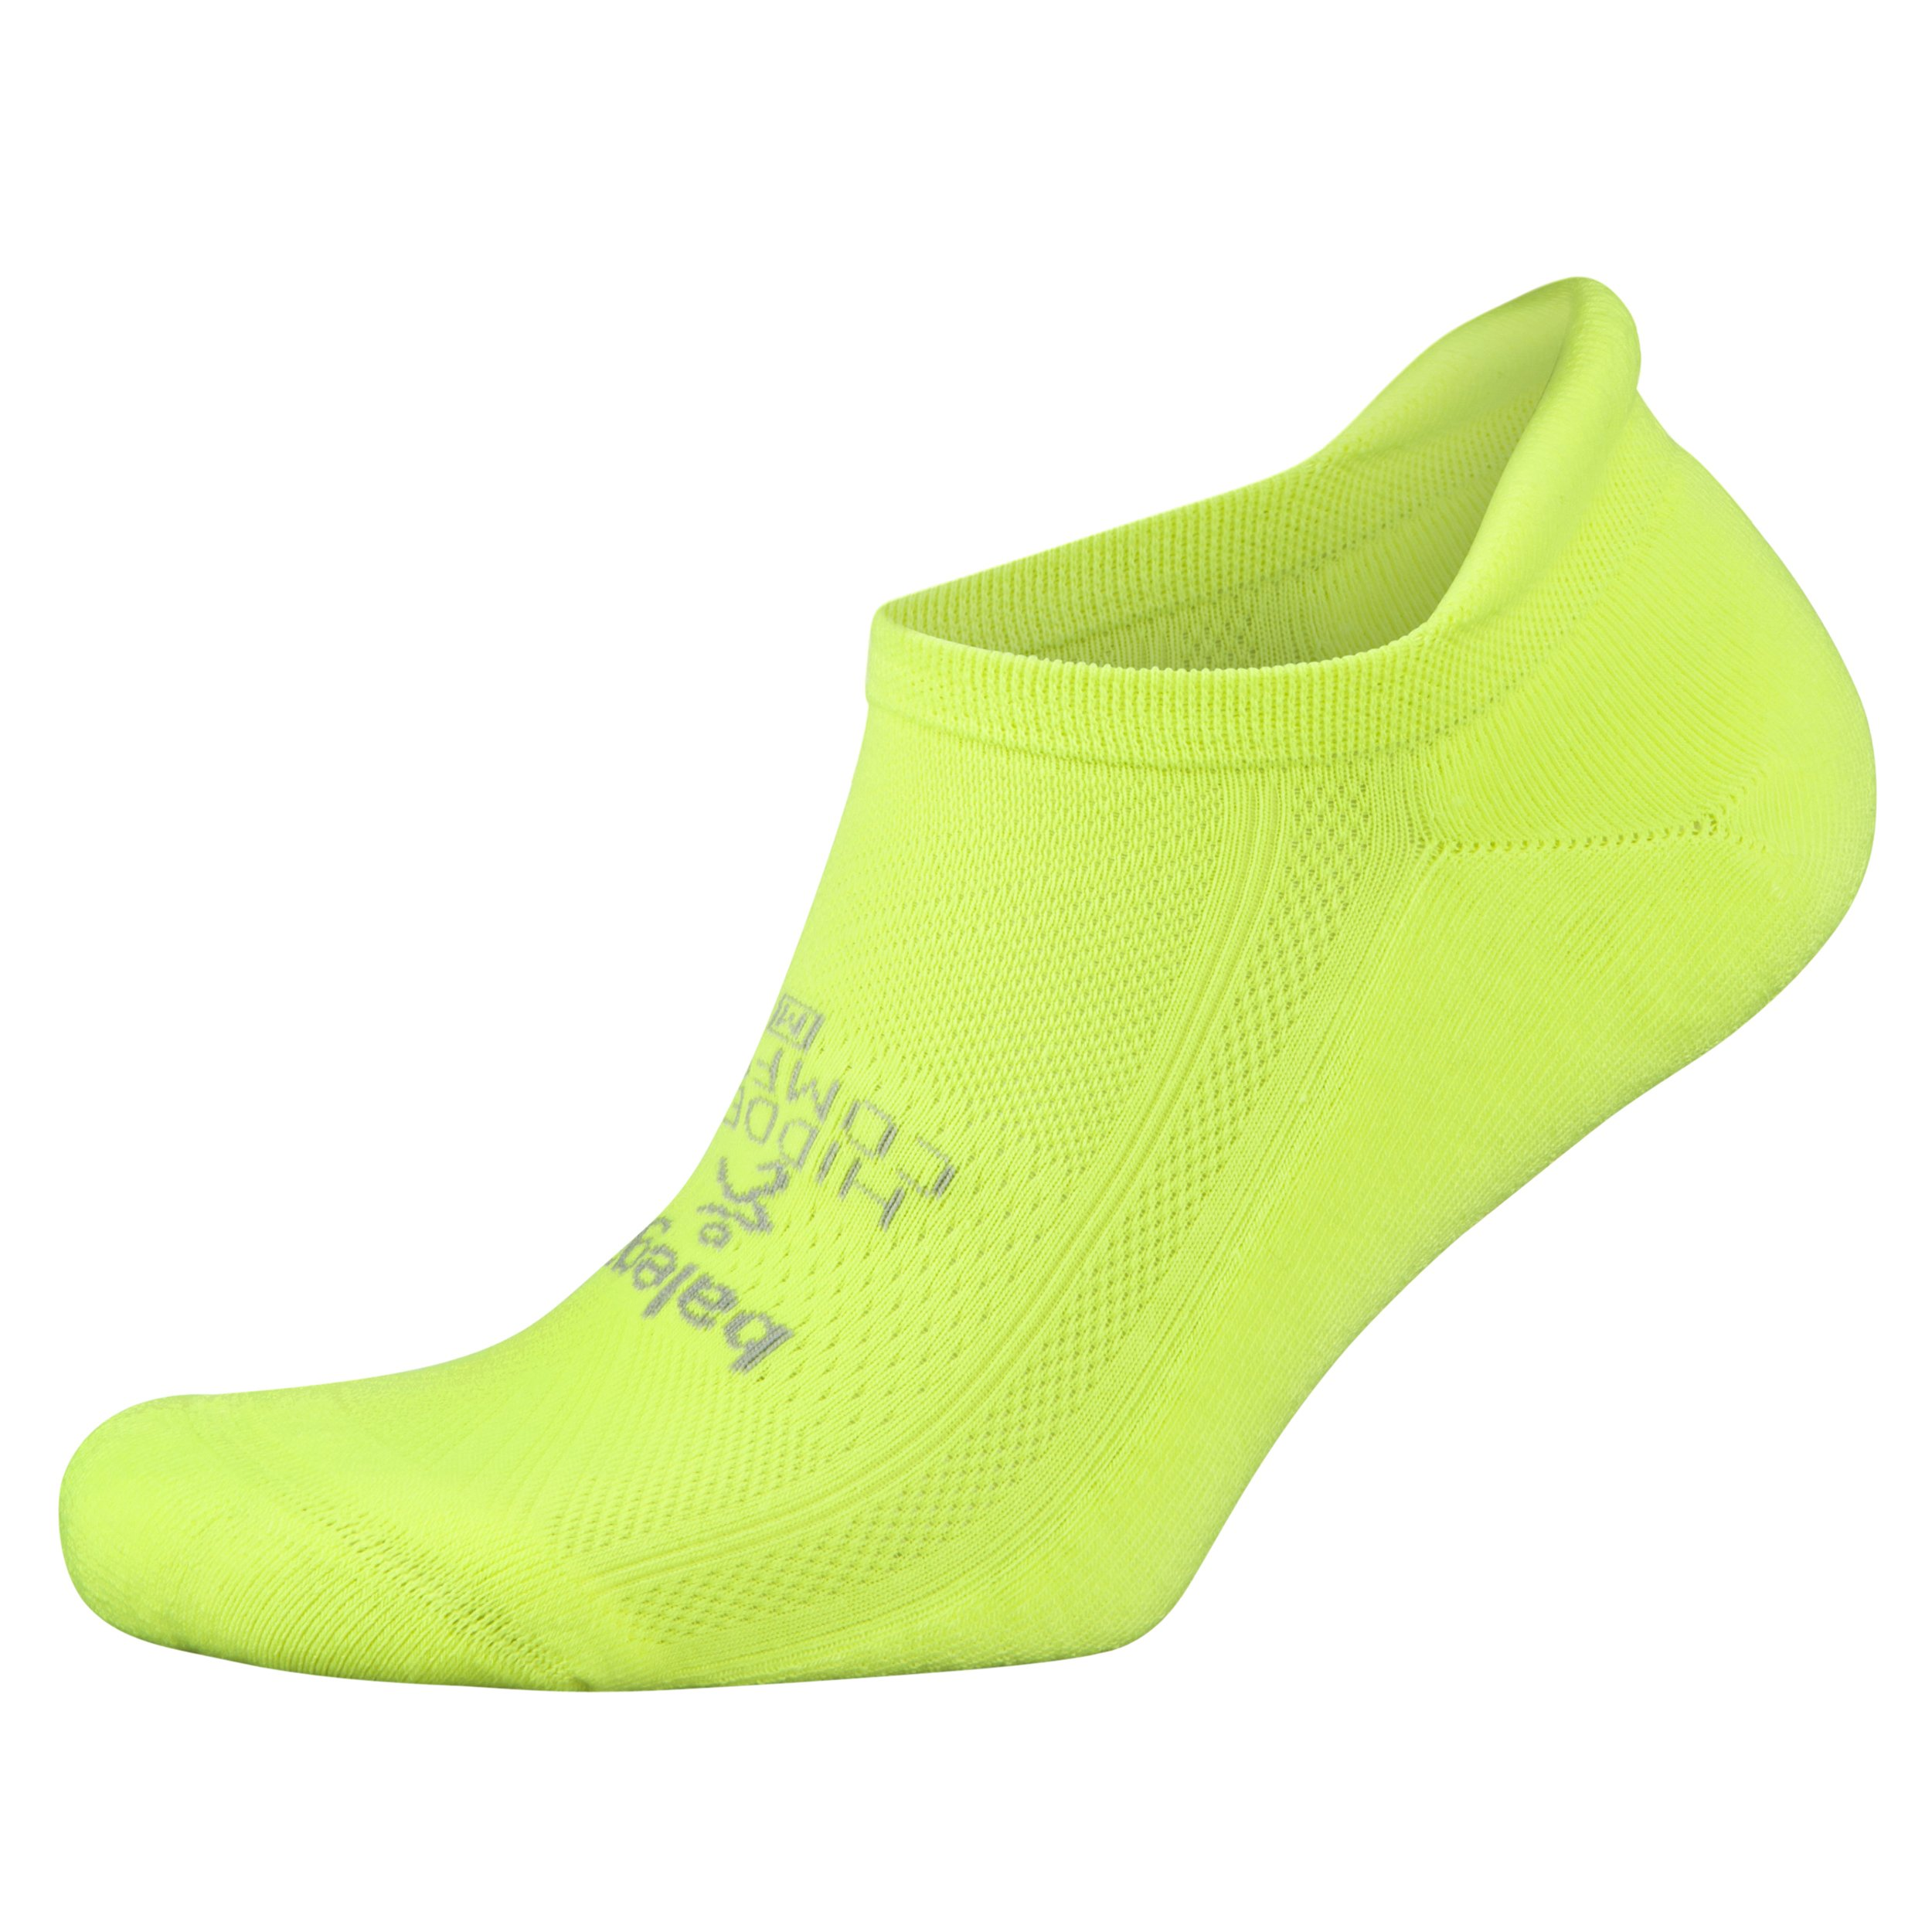 Balega Hidden Comfort No-Show Running Socks for Men and Women (1 Pair), Zest Lemon, Small by Balega